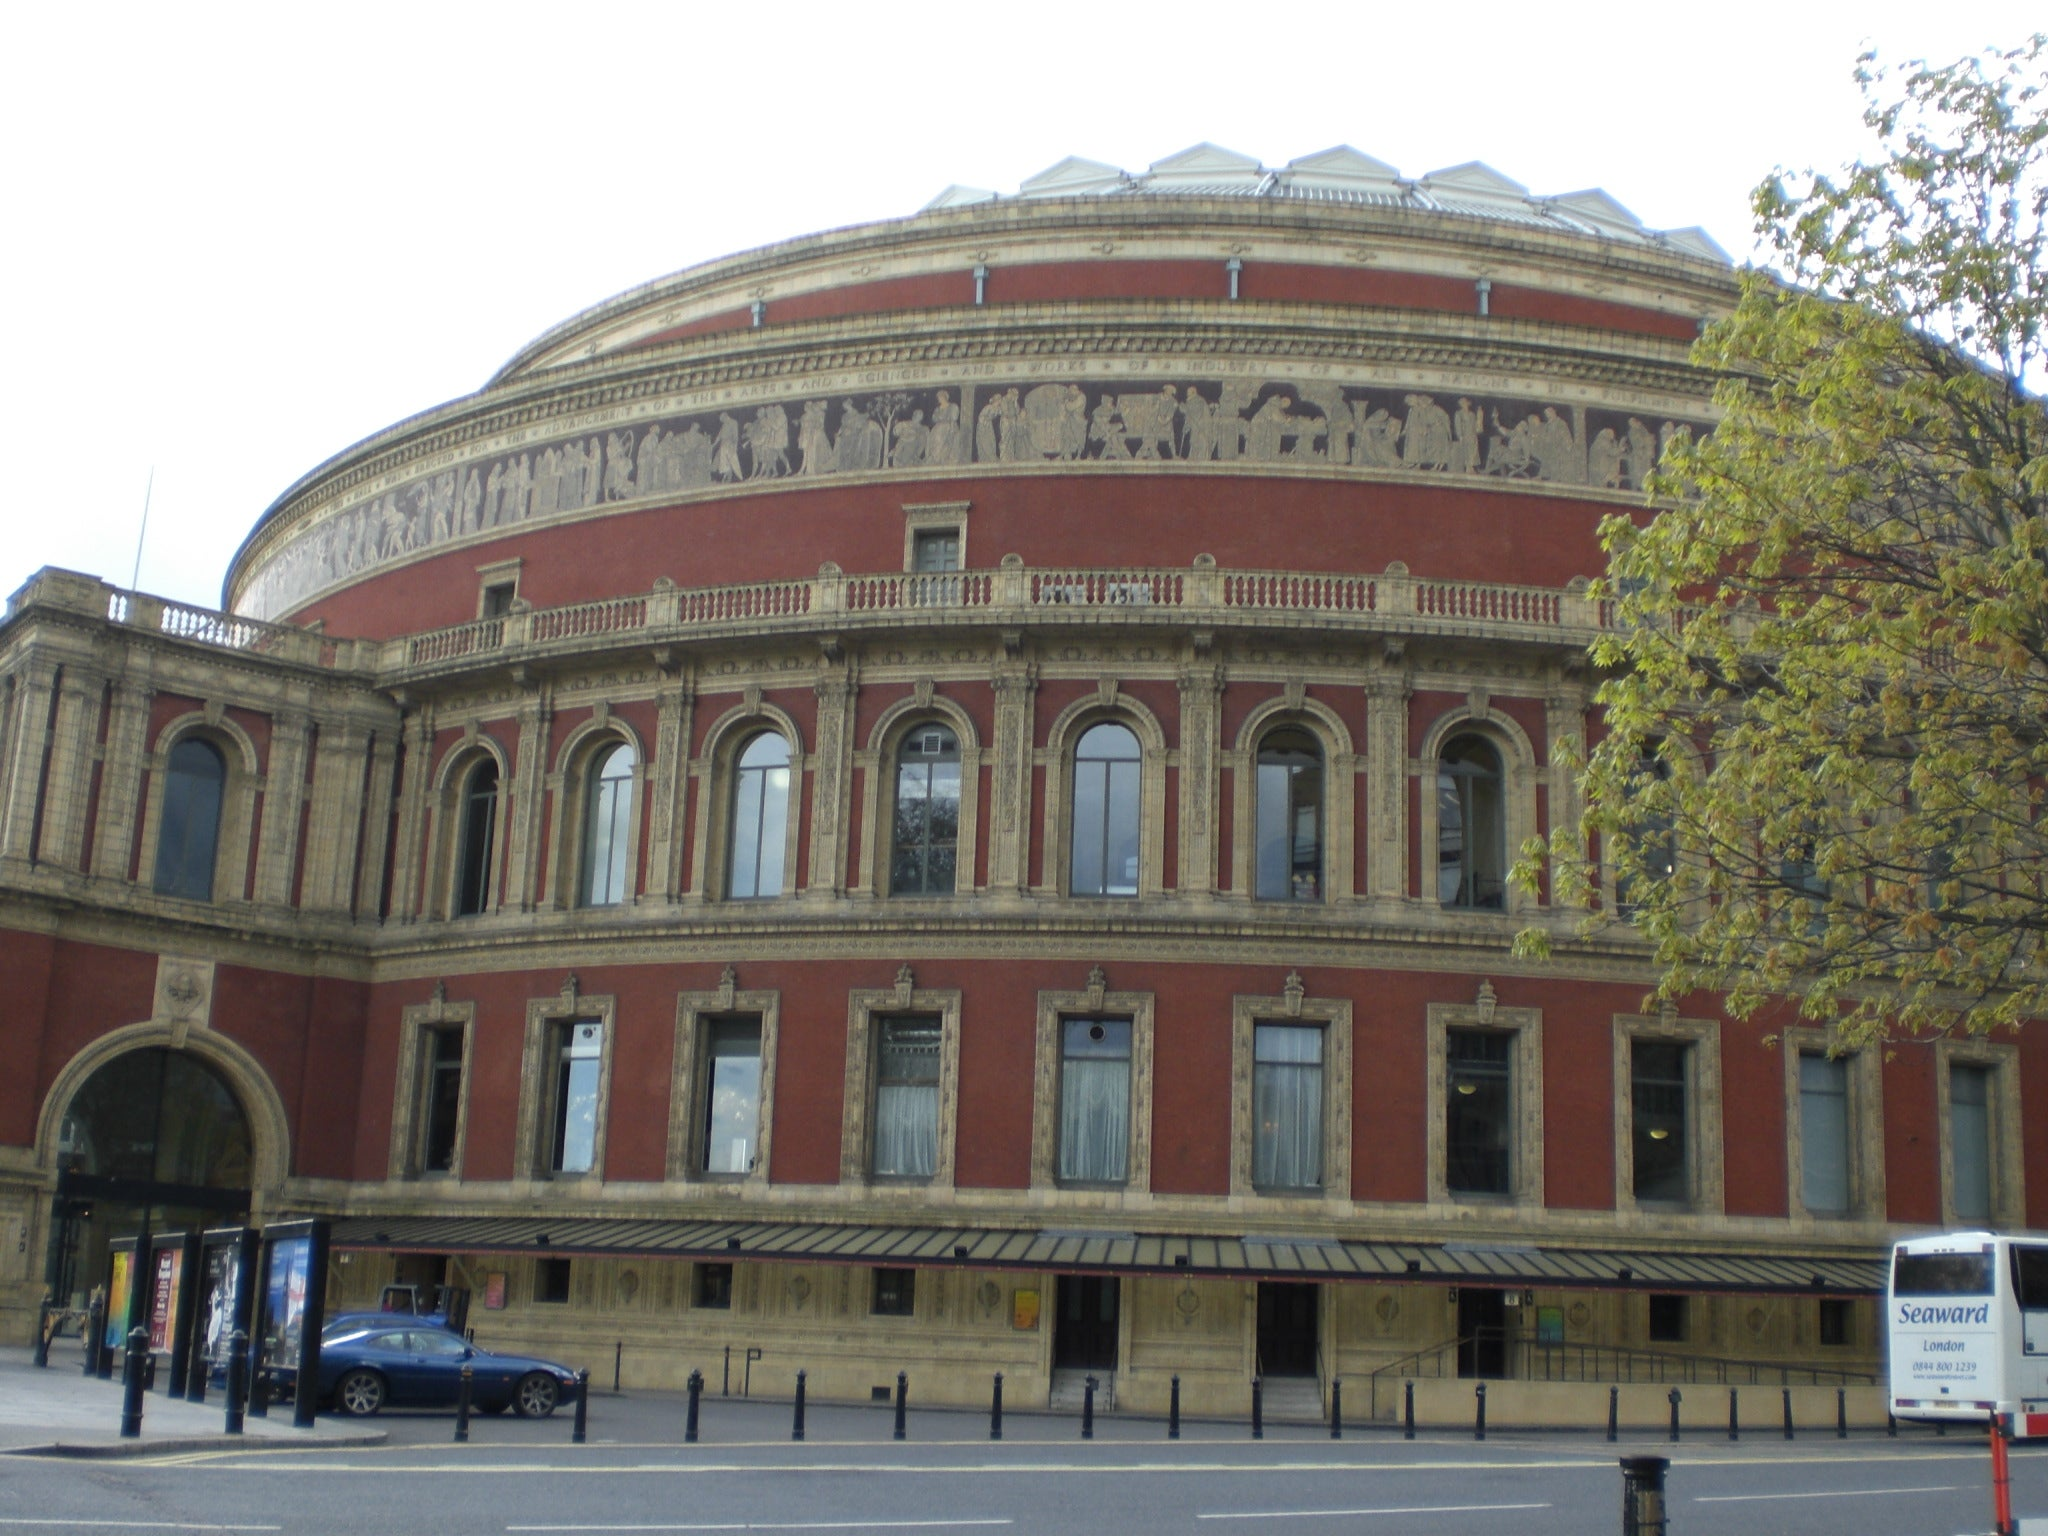 Bautisterio en Royal Albert Hall